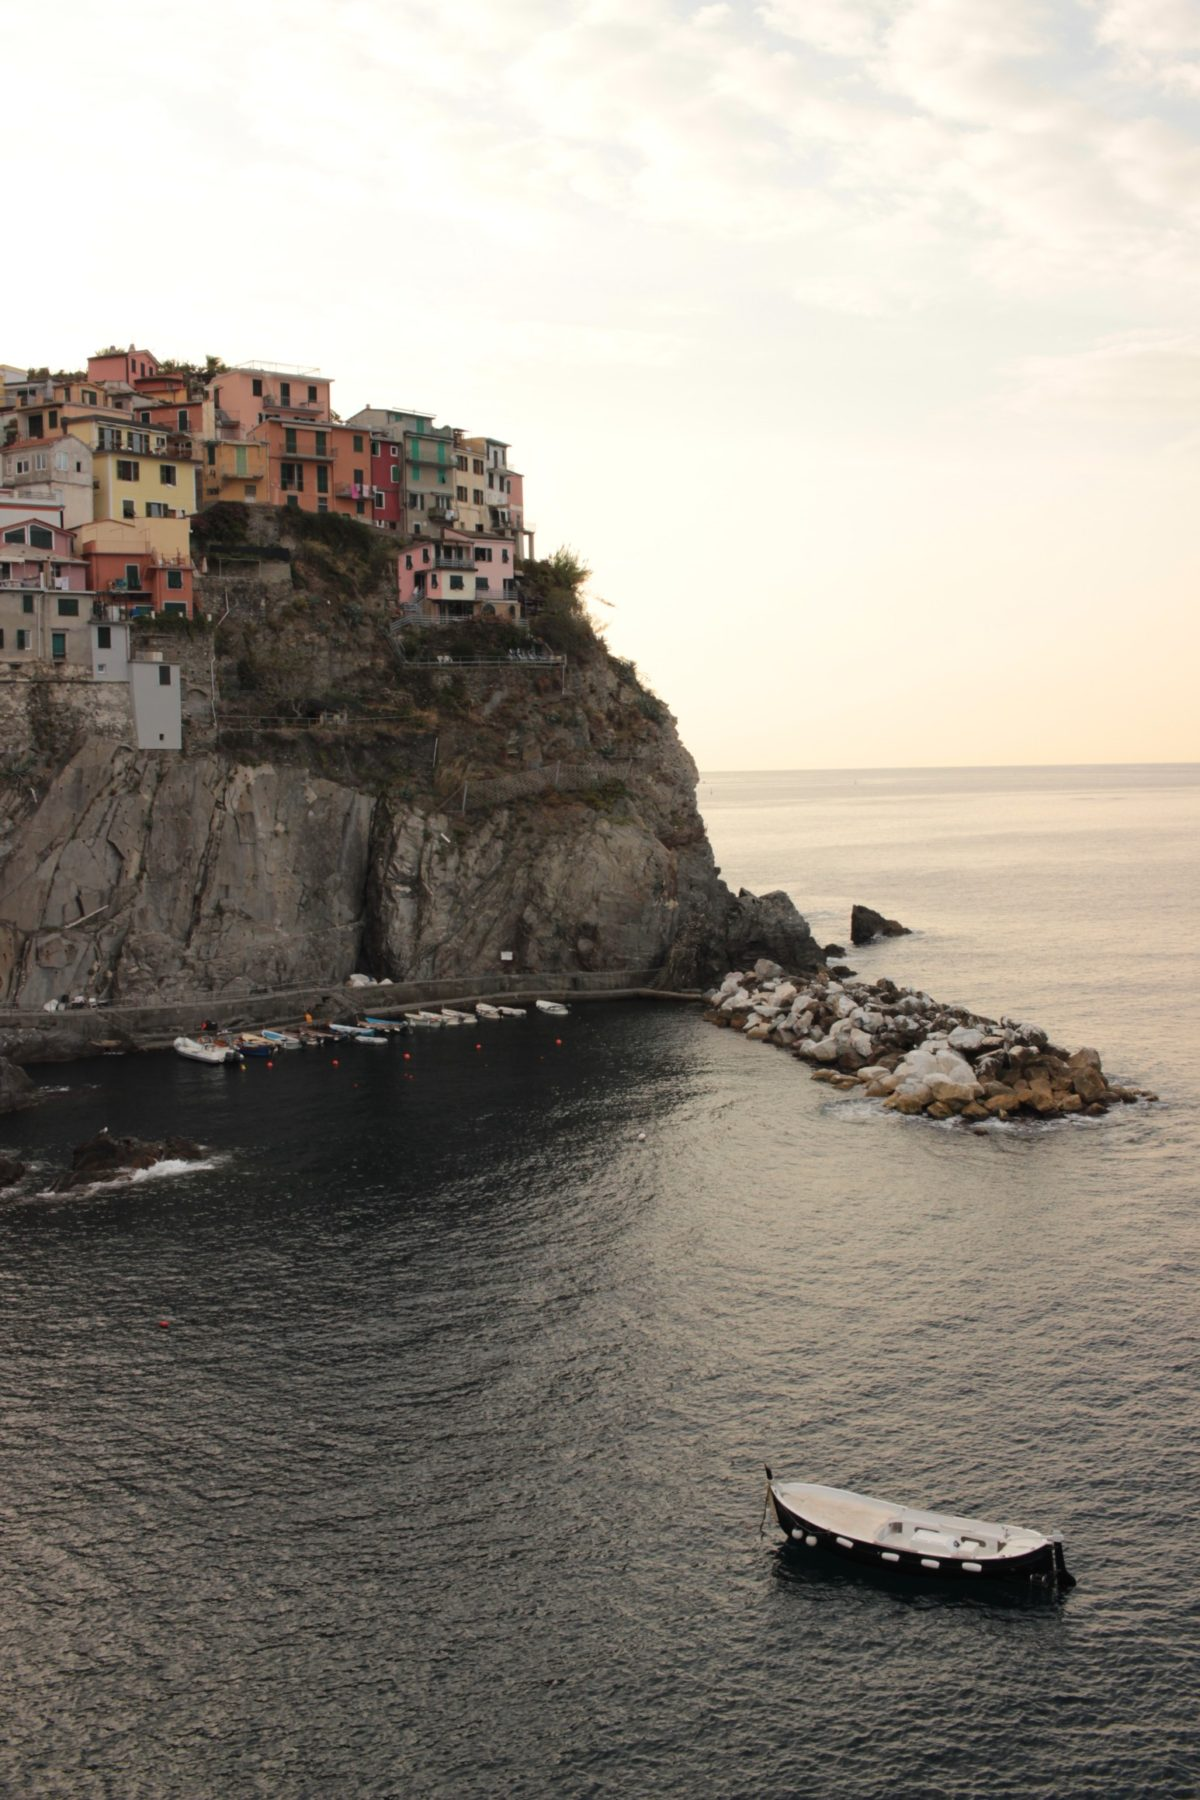 Another view of Manarola's Sunrise